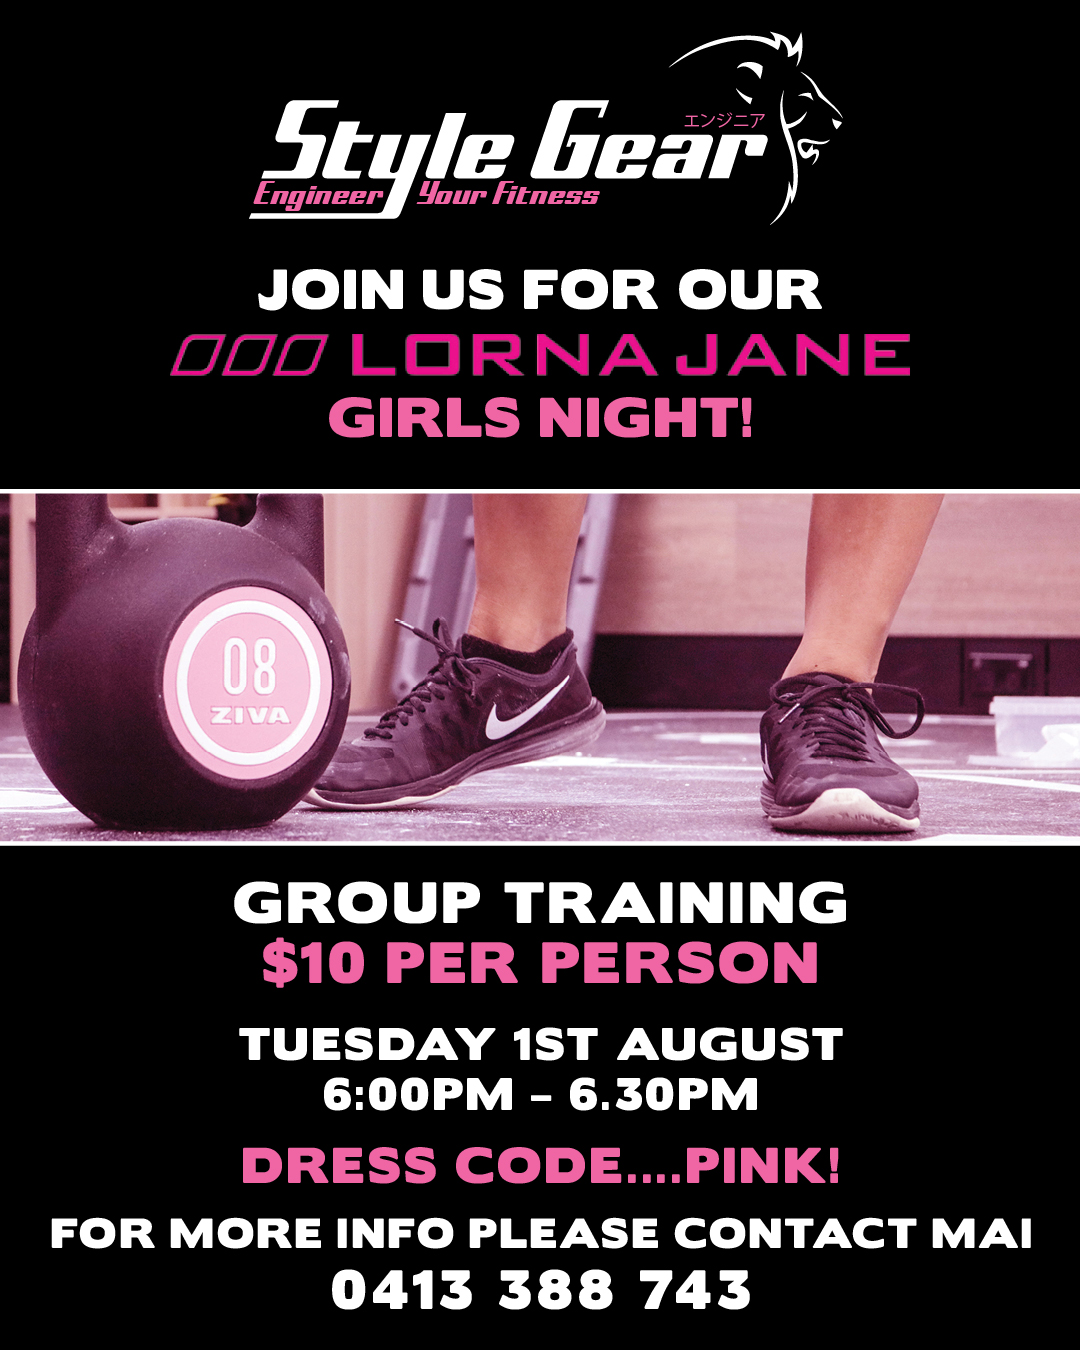 Join us for our Lorna JaneGirls Night - Group Training Session. $10 Per Person.Tuesday 1st August 6.00pm – 6.30pmCome along and join us for a great girls night group training session with Mai. Remember to dress in Pink! Contact Mai for more details!